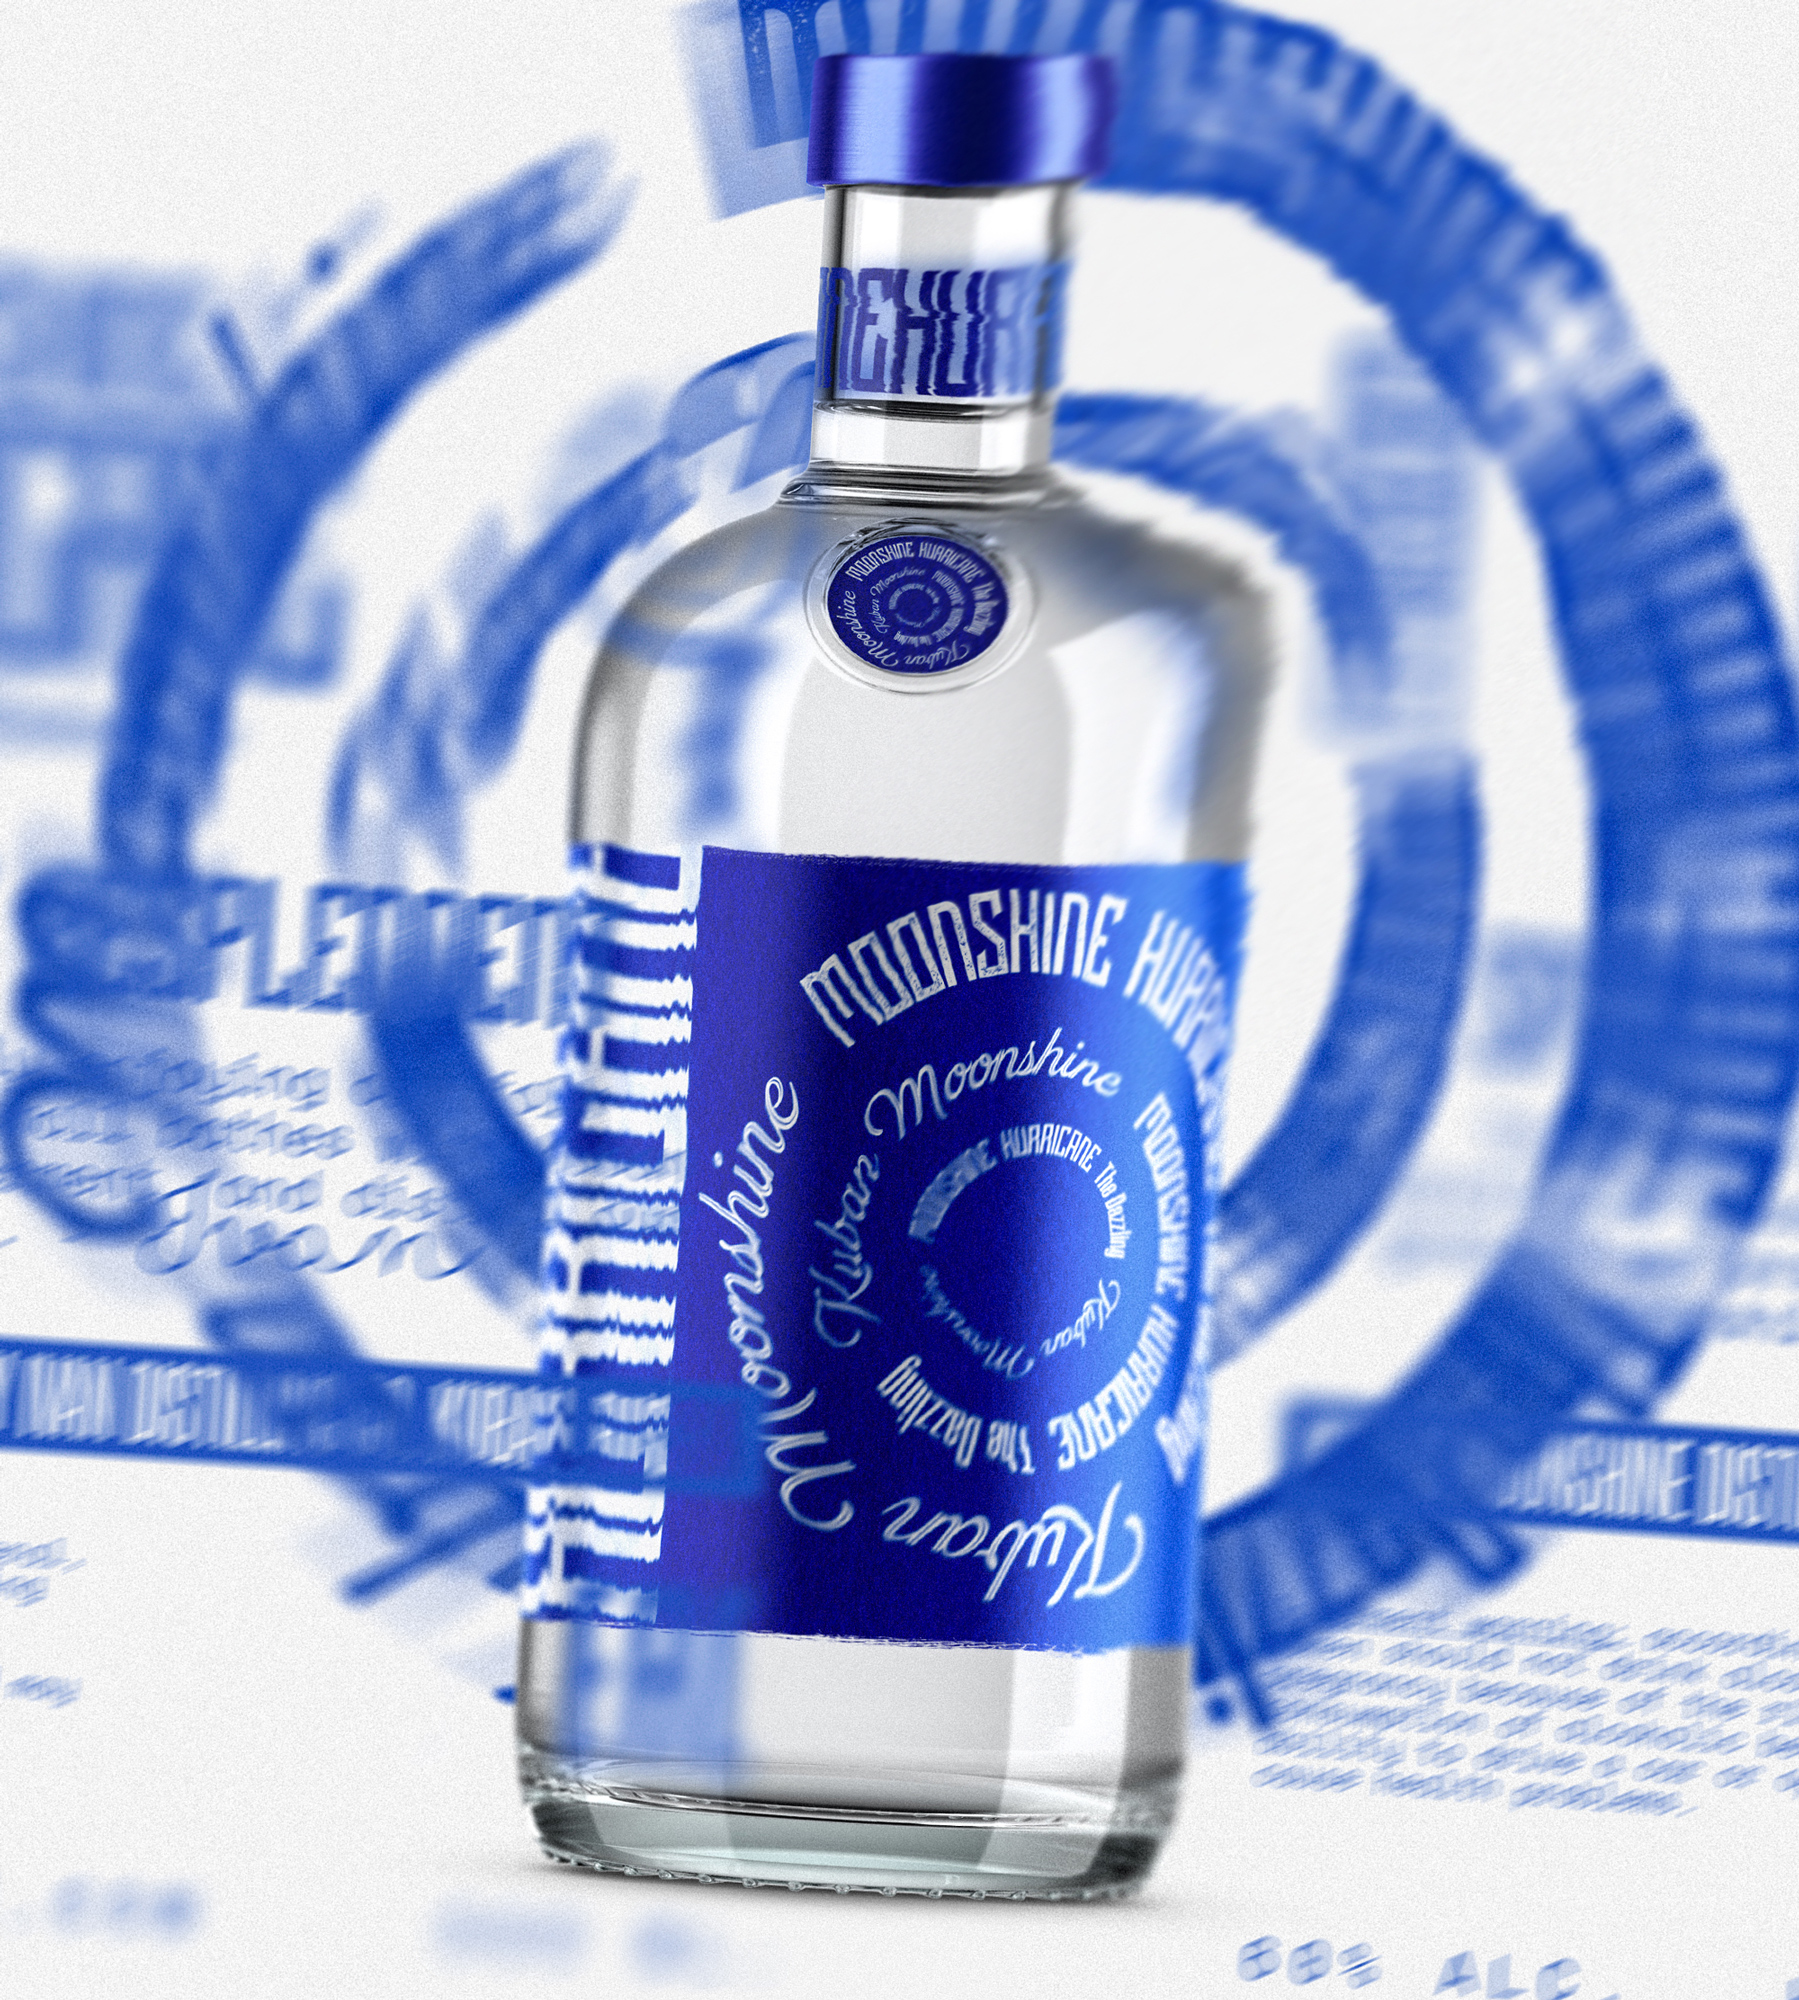 Label Design and Identity for Russian Moonshine